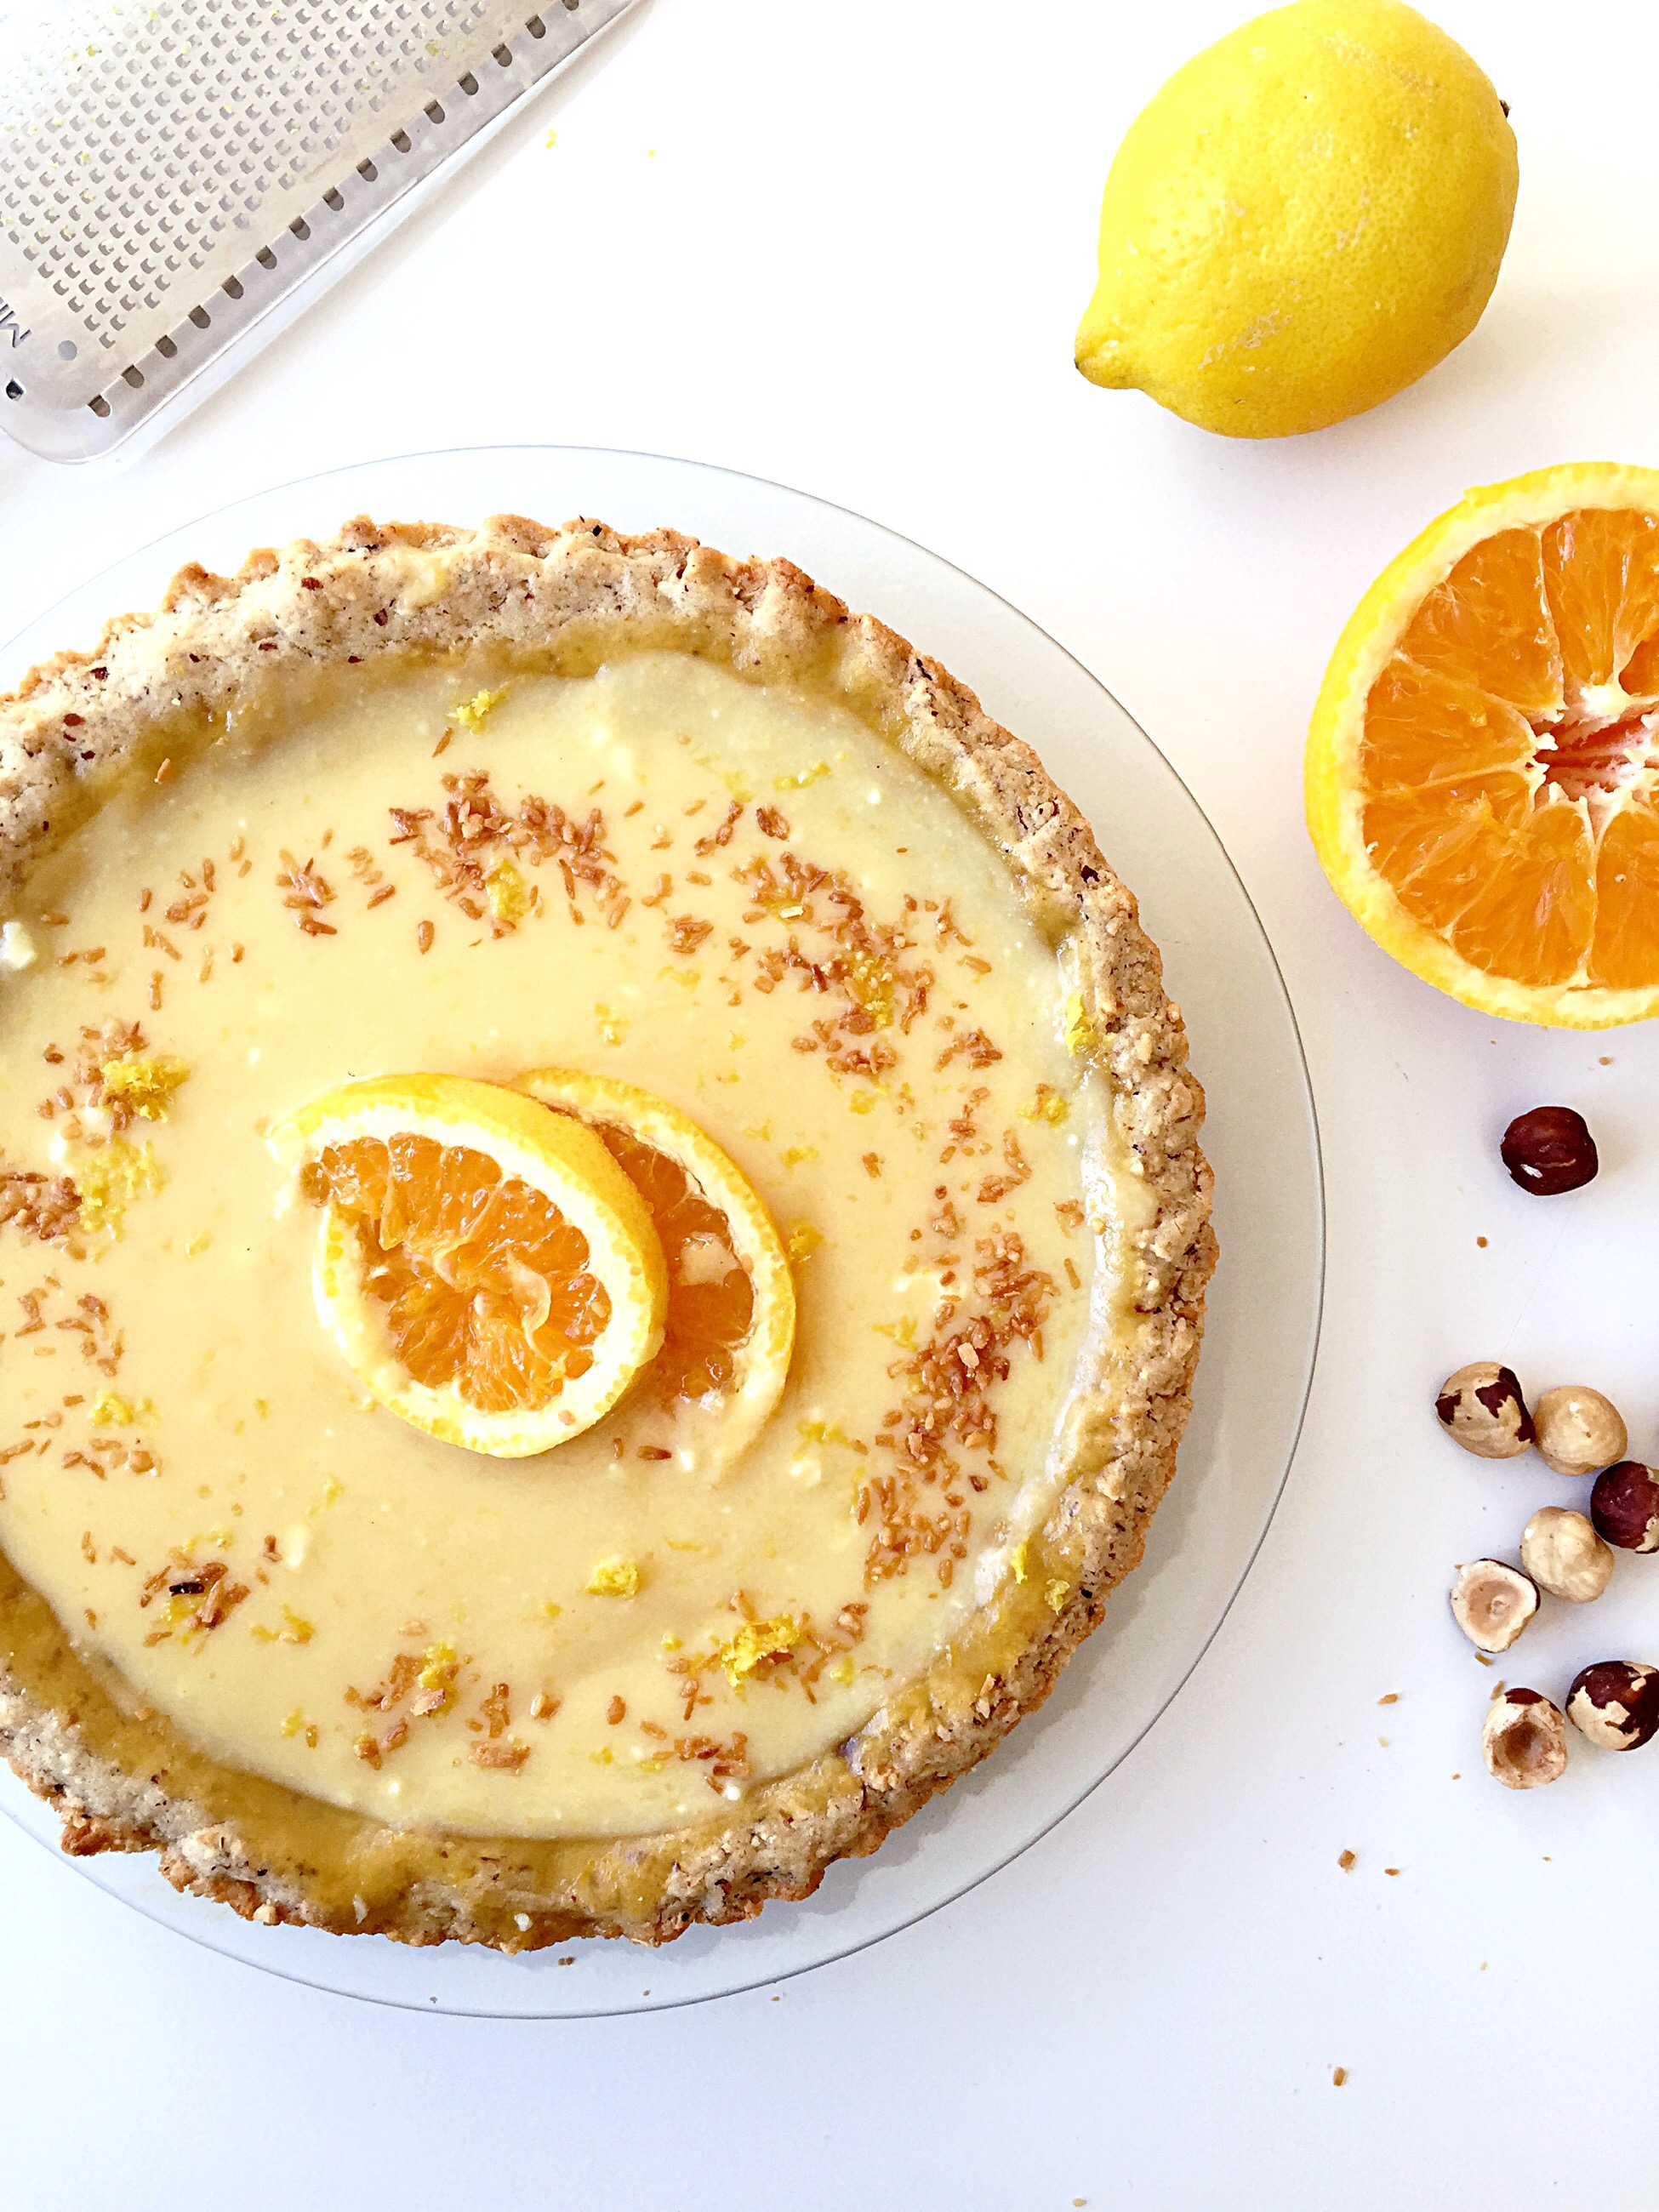 Lemon and Orange tart with Hazelnut crust | The Bee's Kitchen: Tasty ...